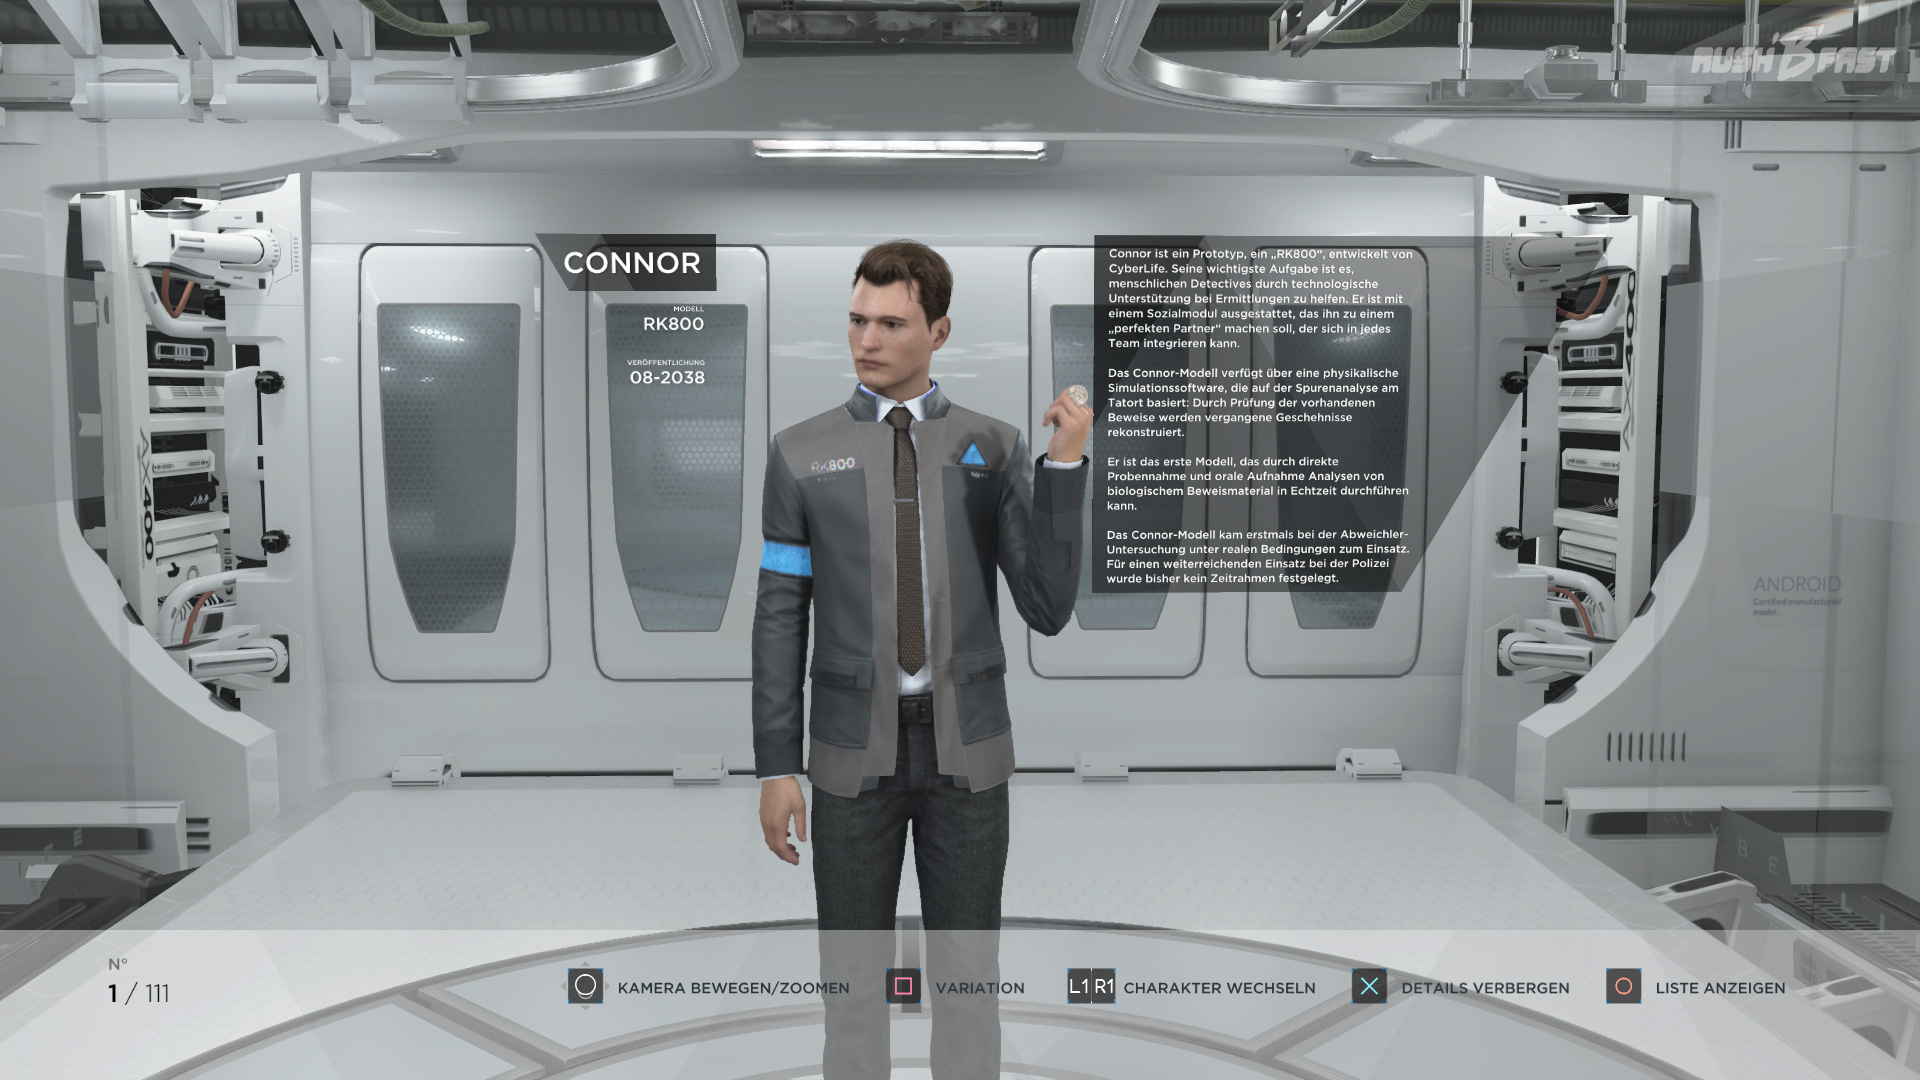 Detroit: Become Human - Connor - Modell: RK800